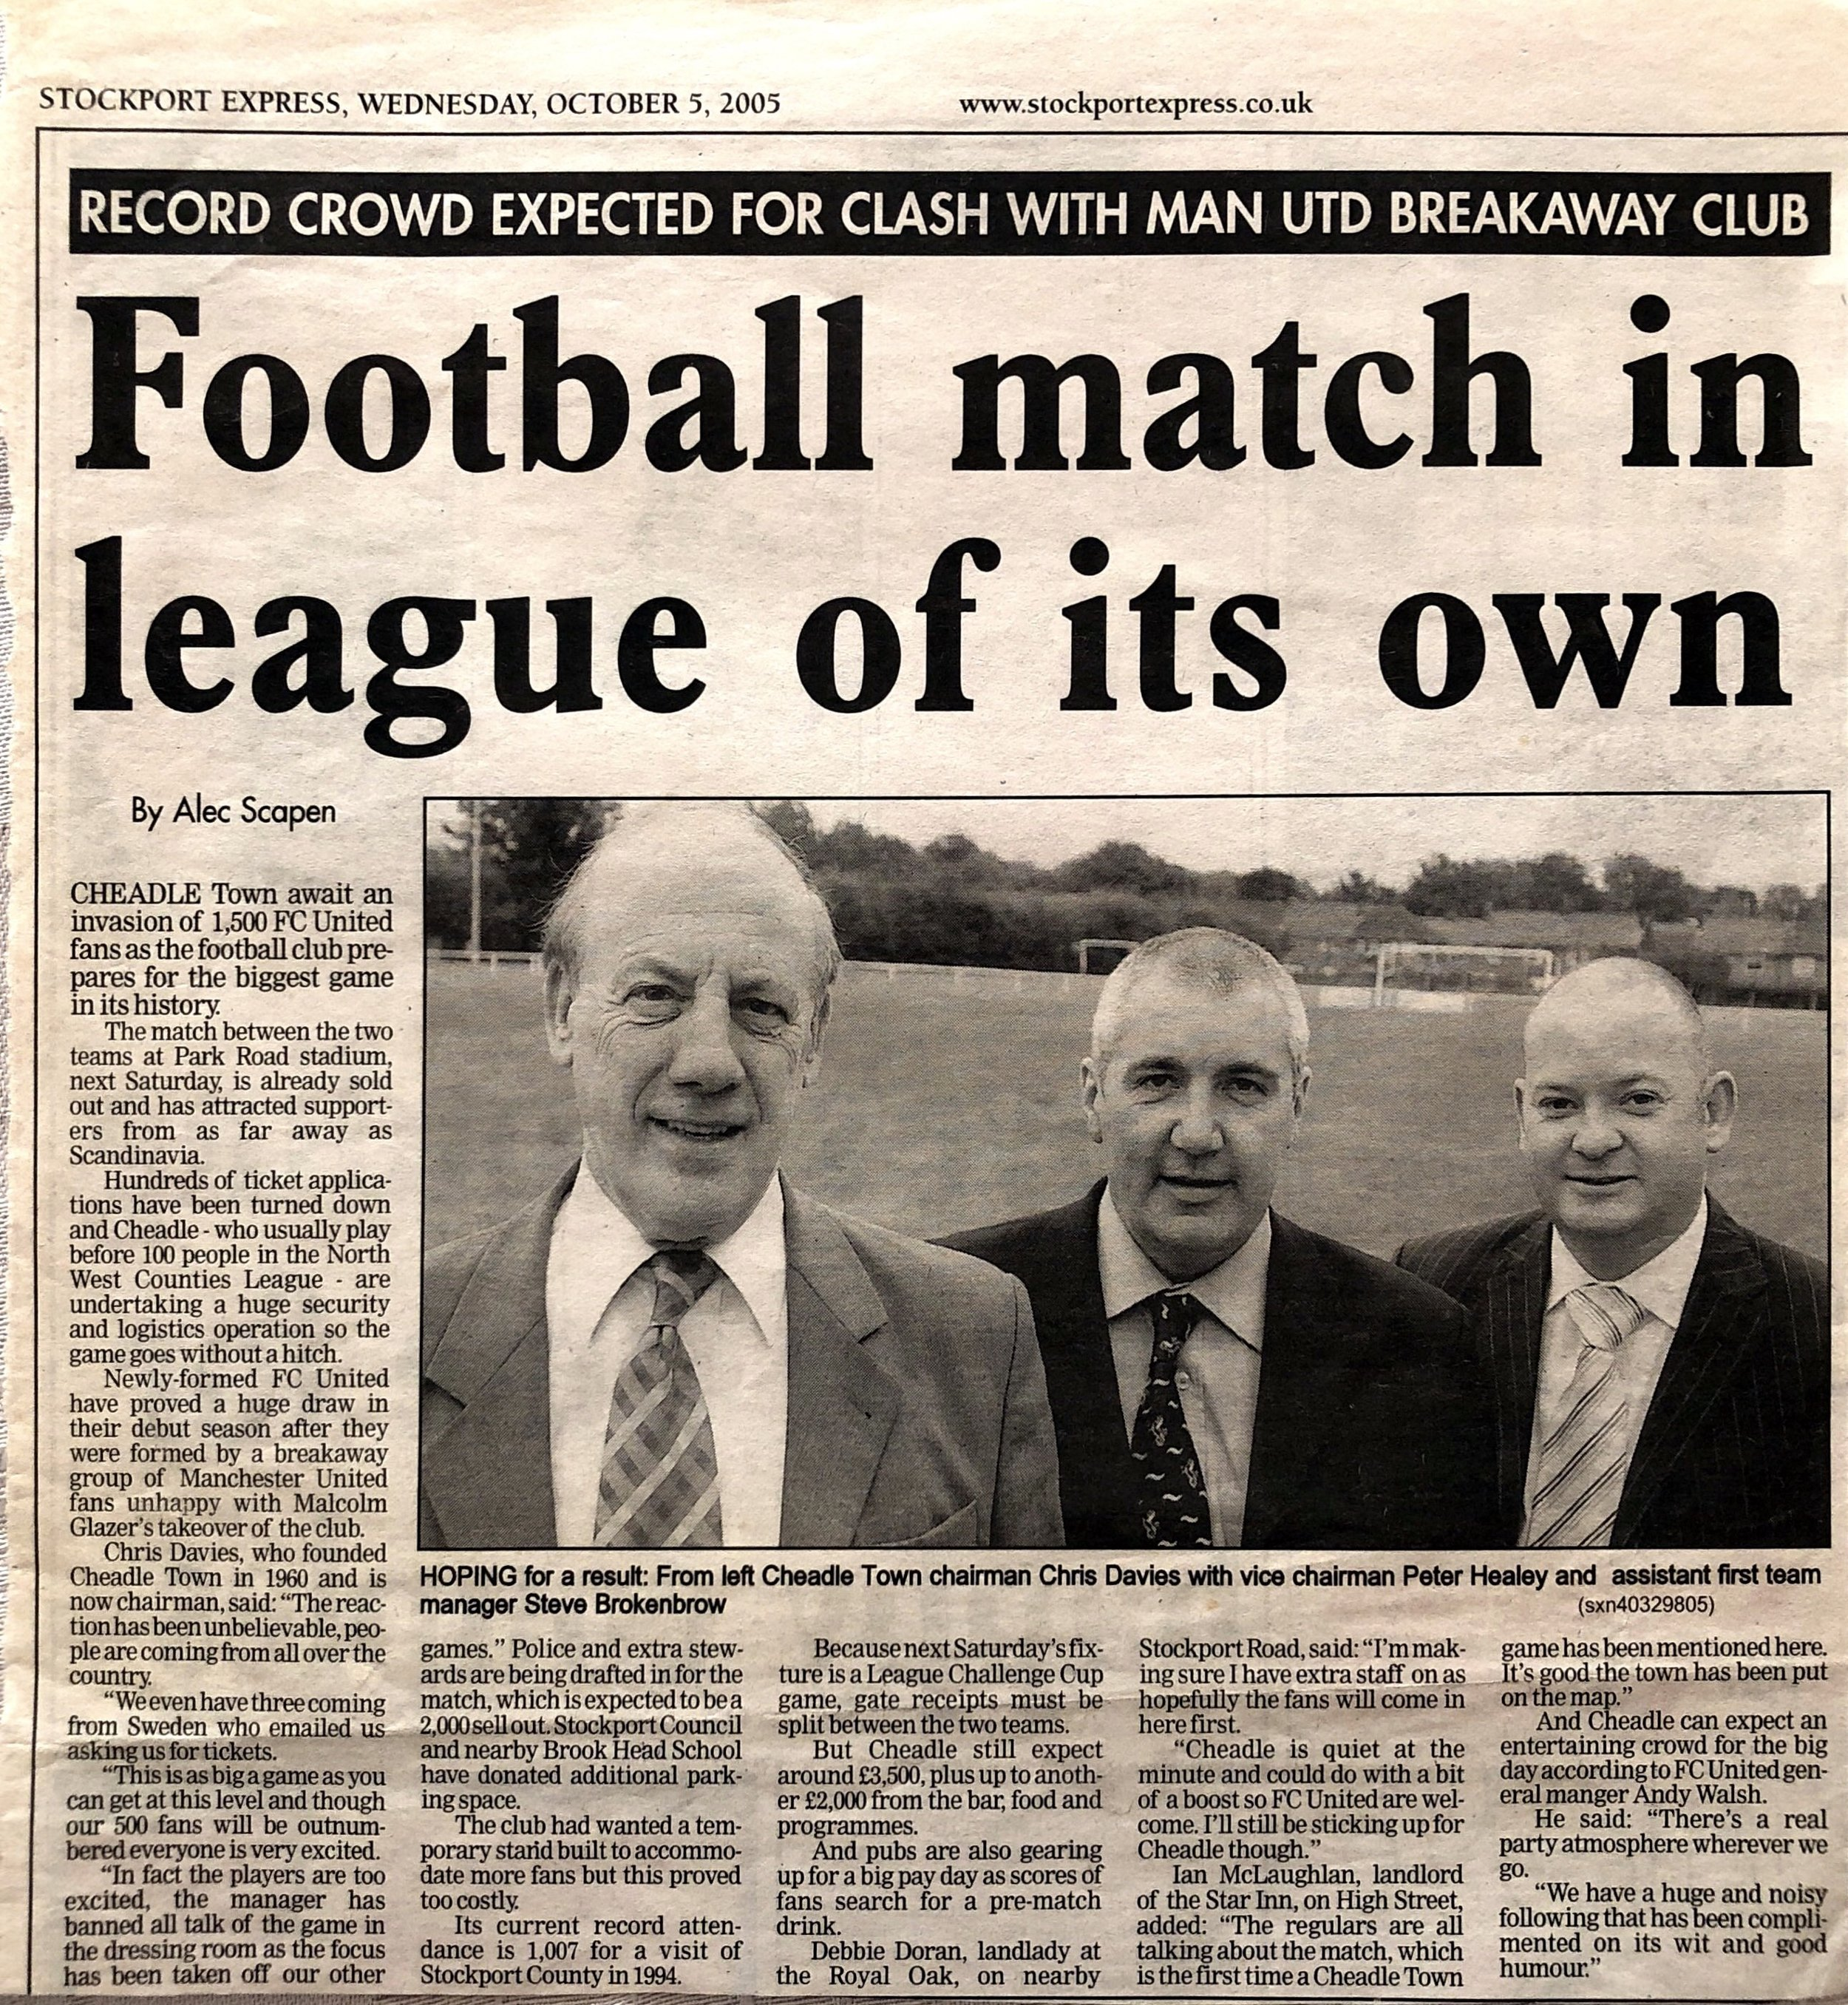 We're all excited about the impending match vs FC United in the 2005-06 season.